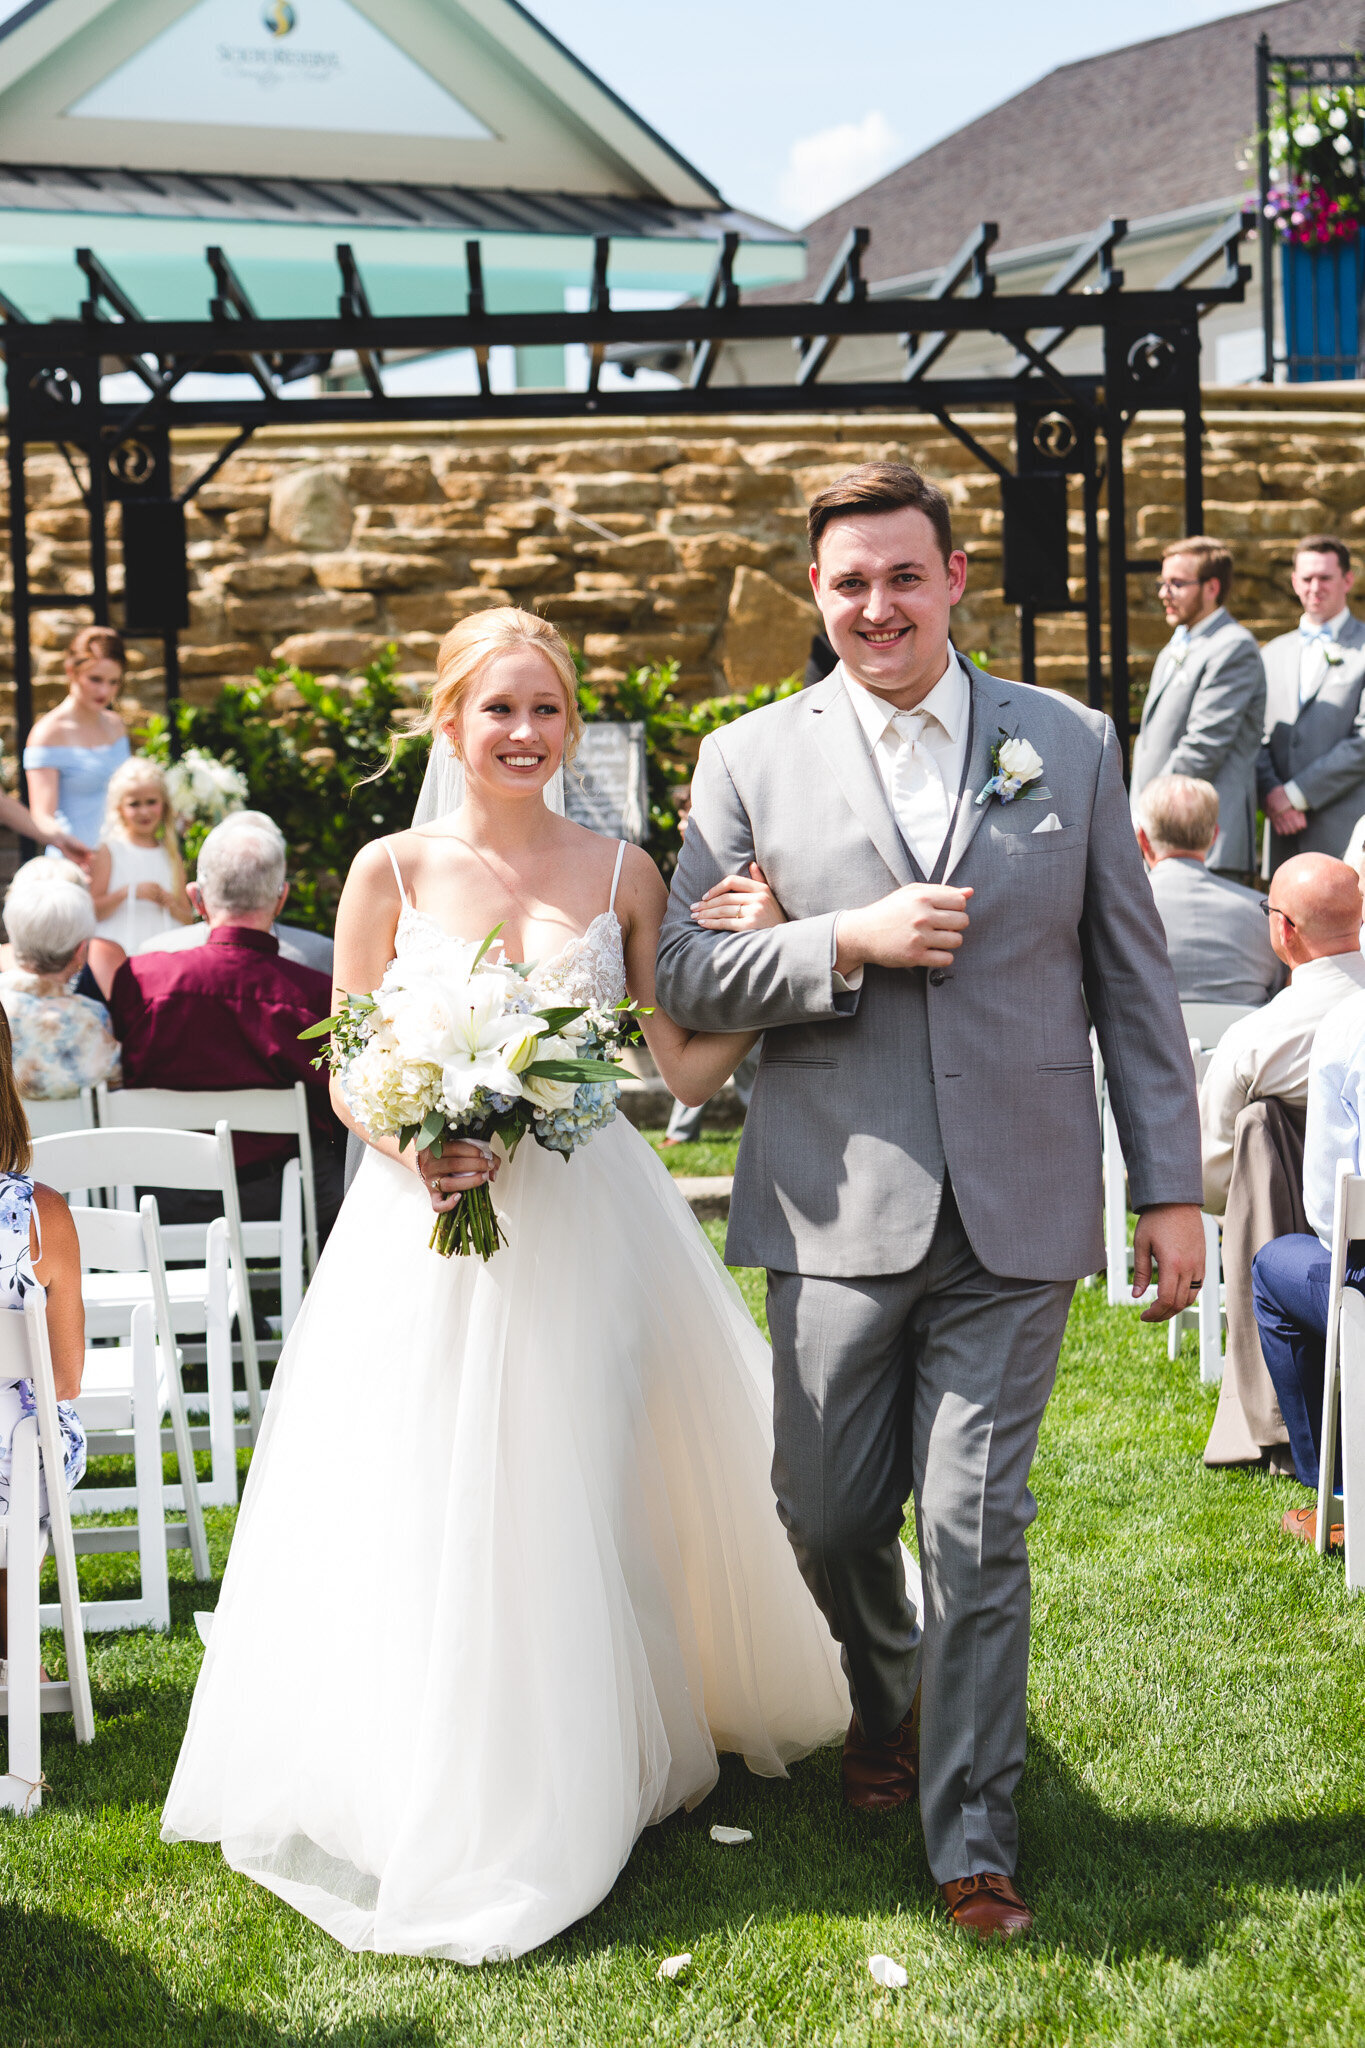 bride and groom recessional smiling with flowers ohio wedding